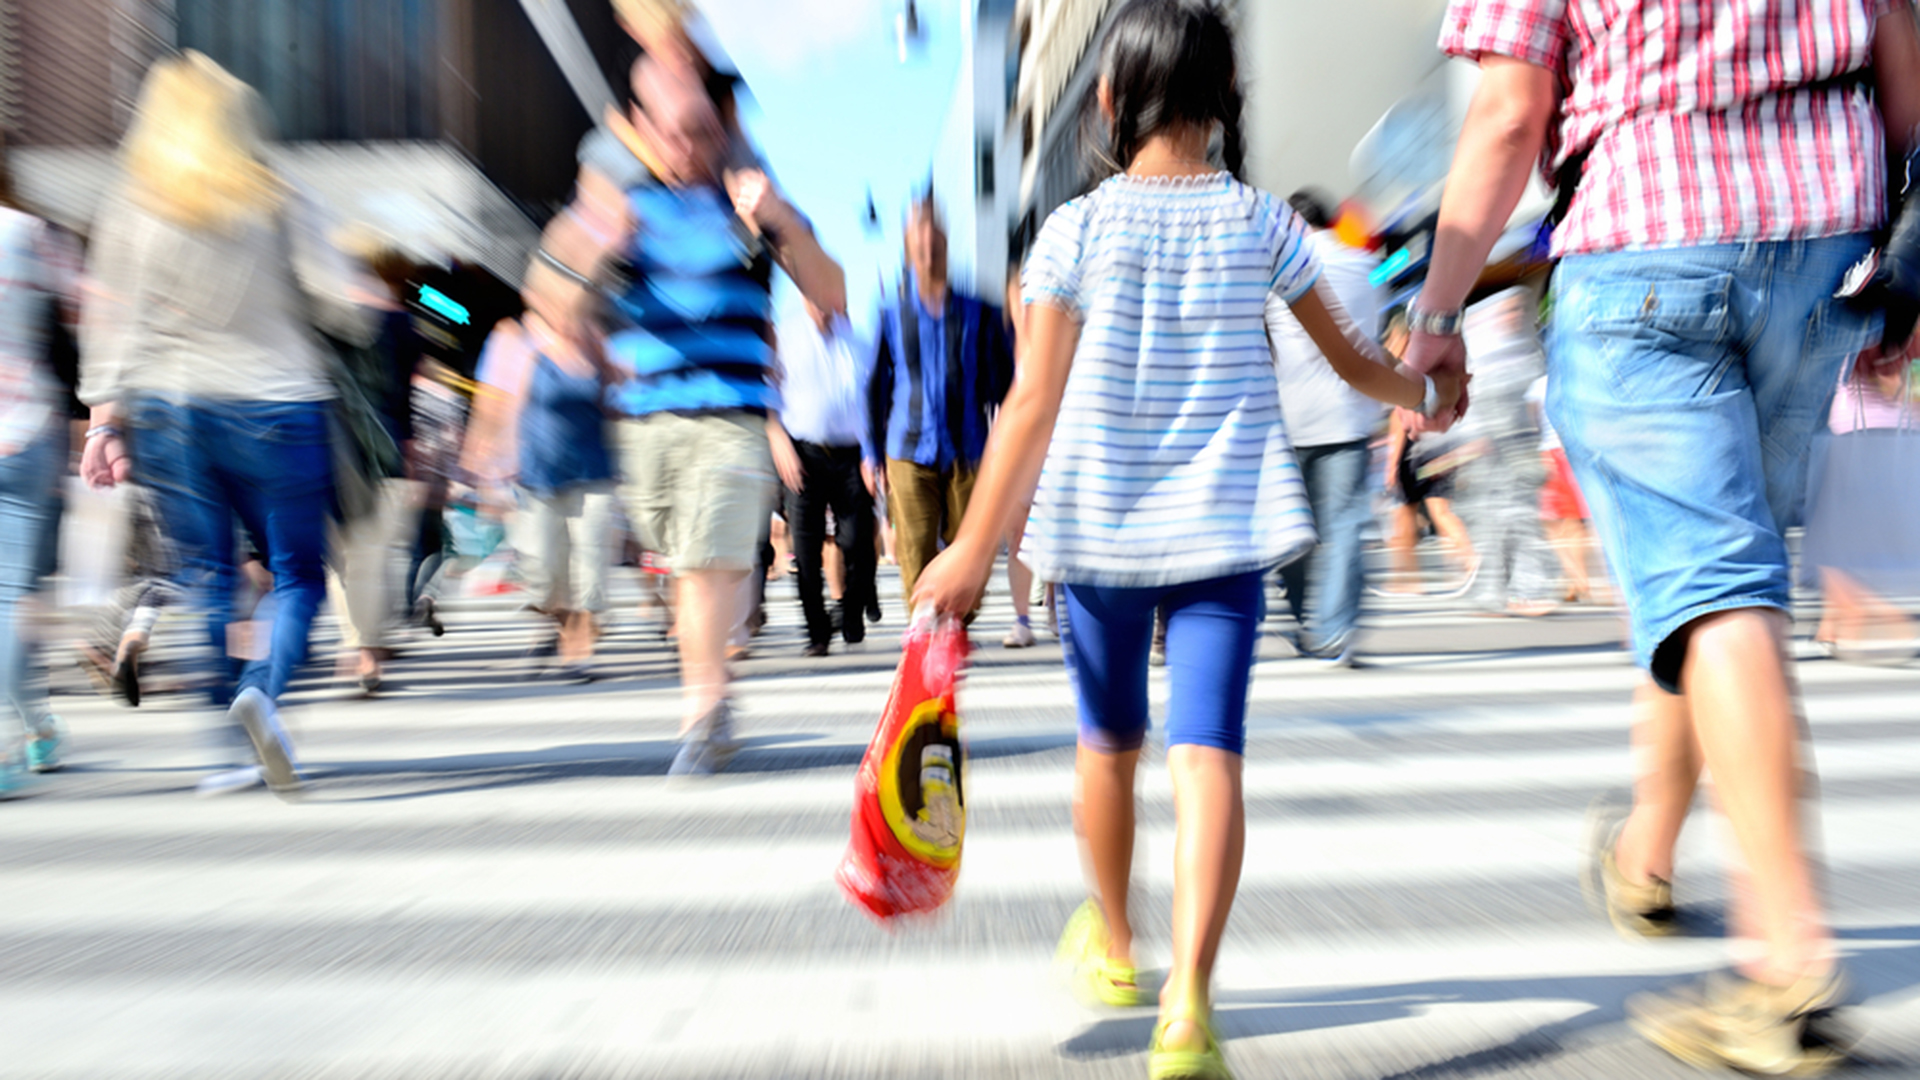 Police Parents Share Tips For Safe Kids In Crowded Places